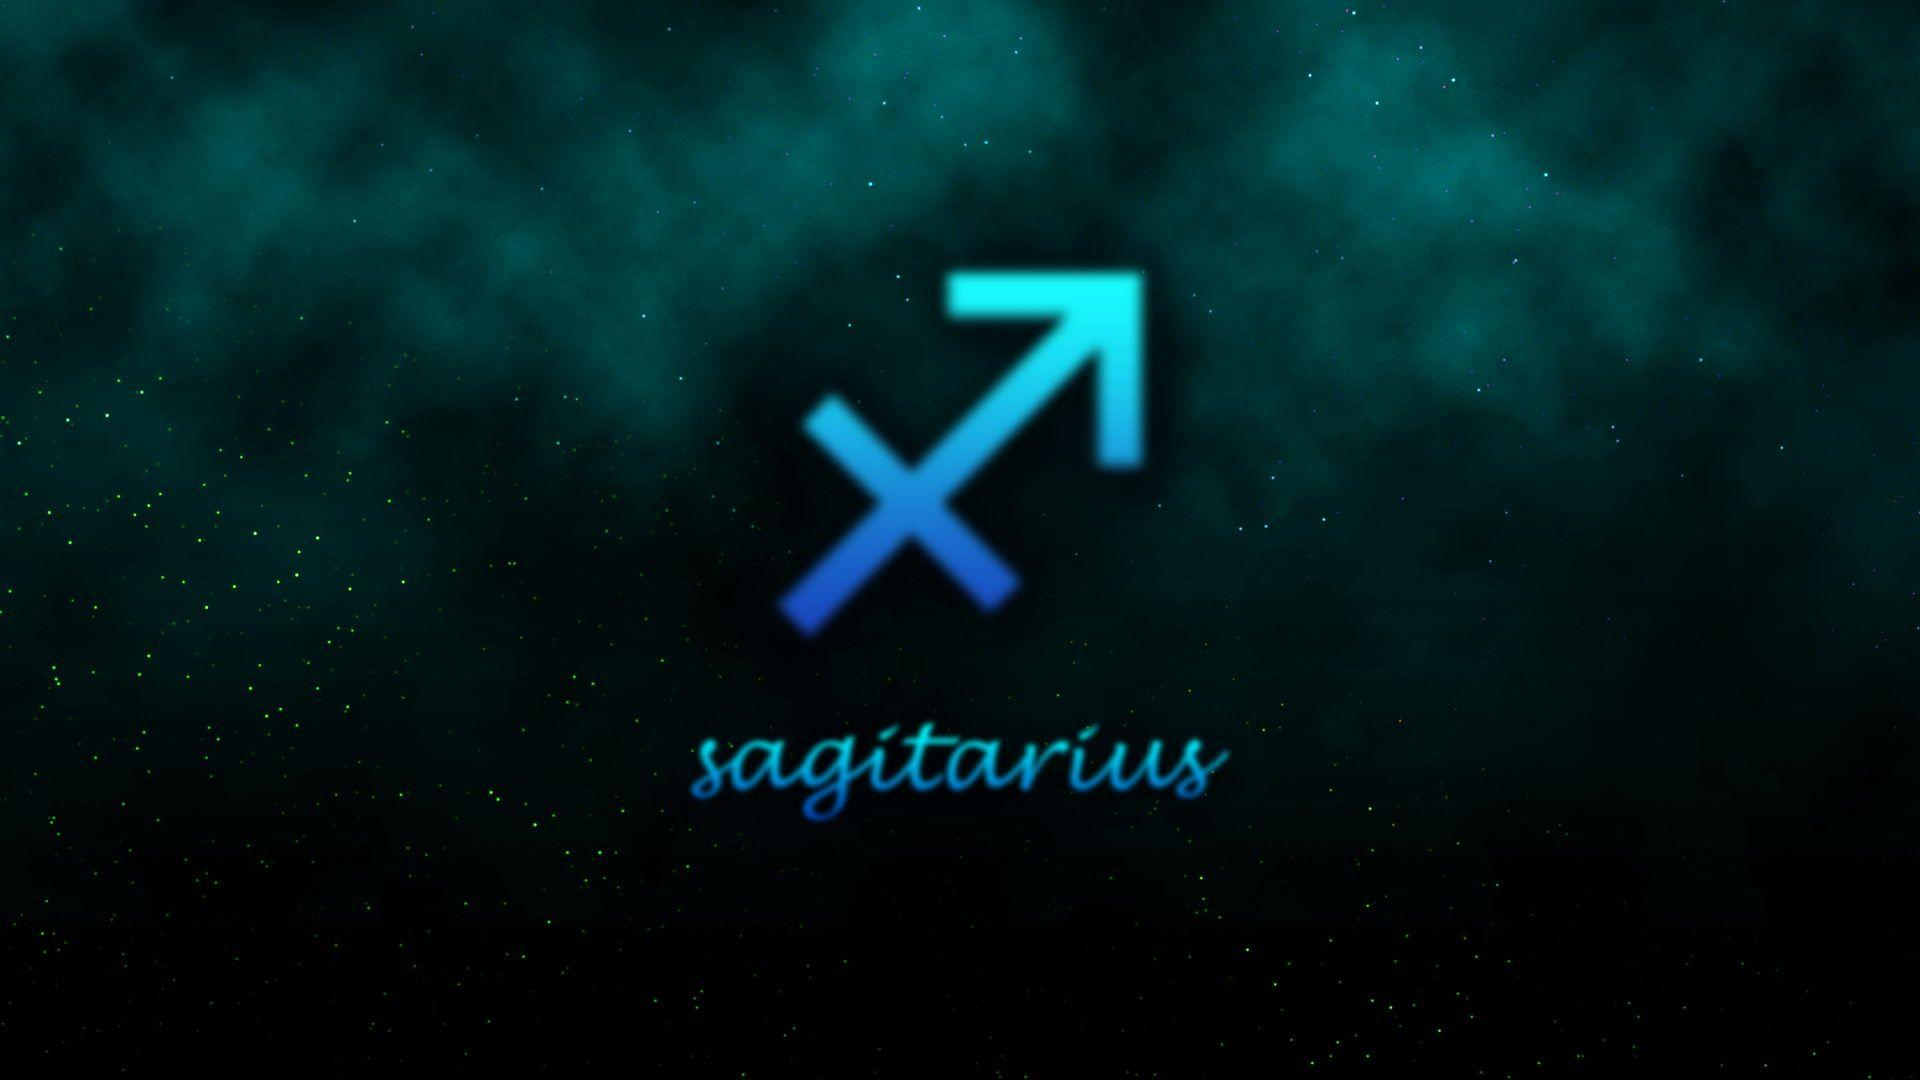 Sagittarius Wallpapers Wallpaper Cave